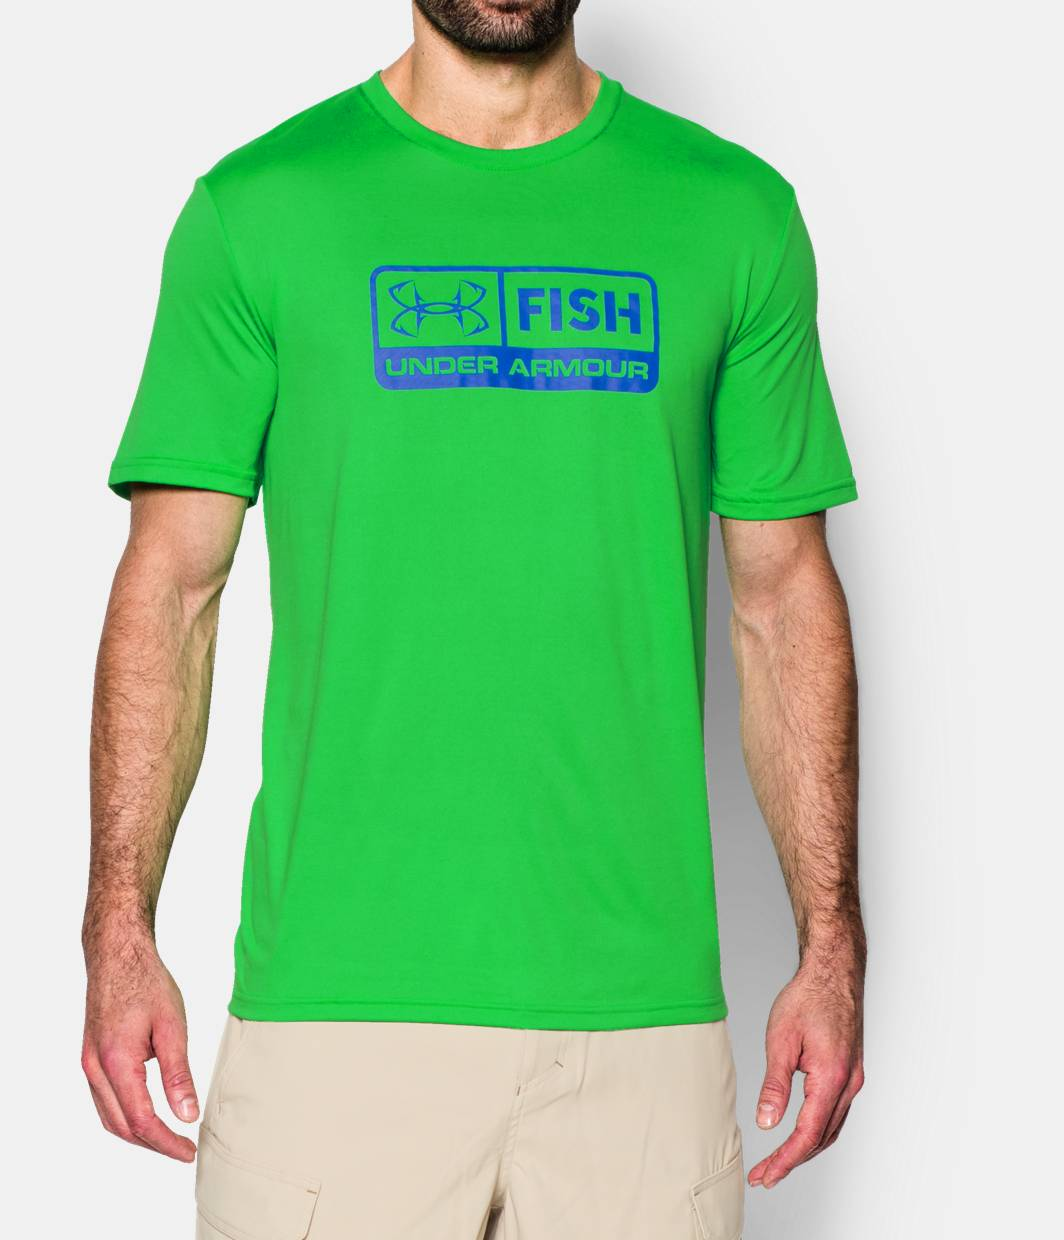 Men s ua fish t shirt under armour us for Under armour fishing shirts clearance